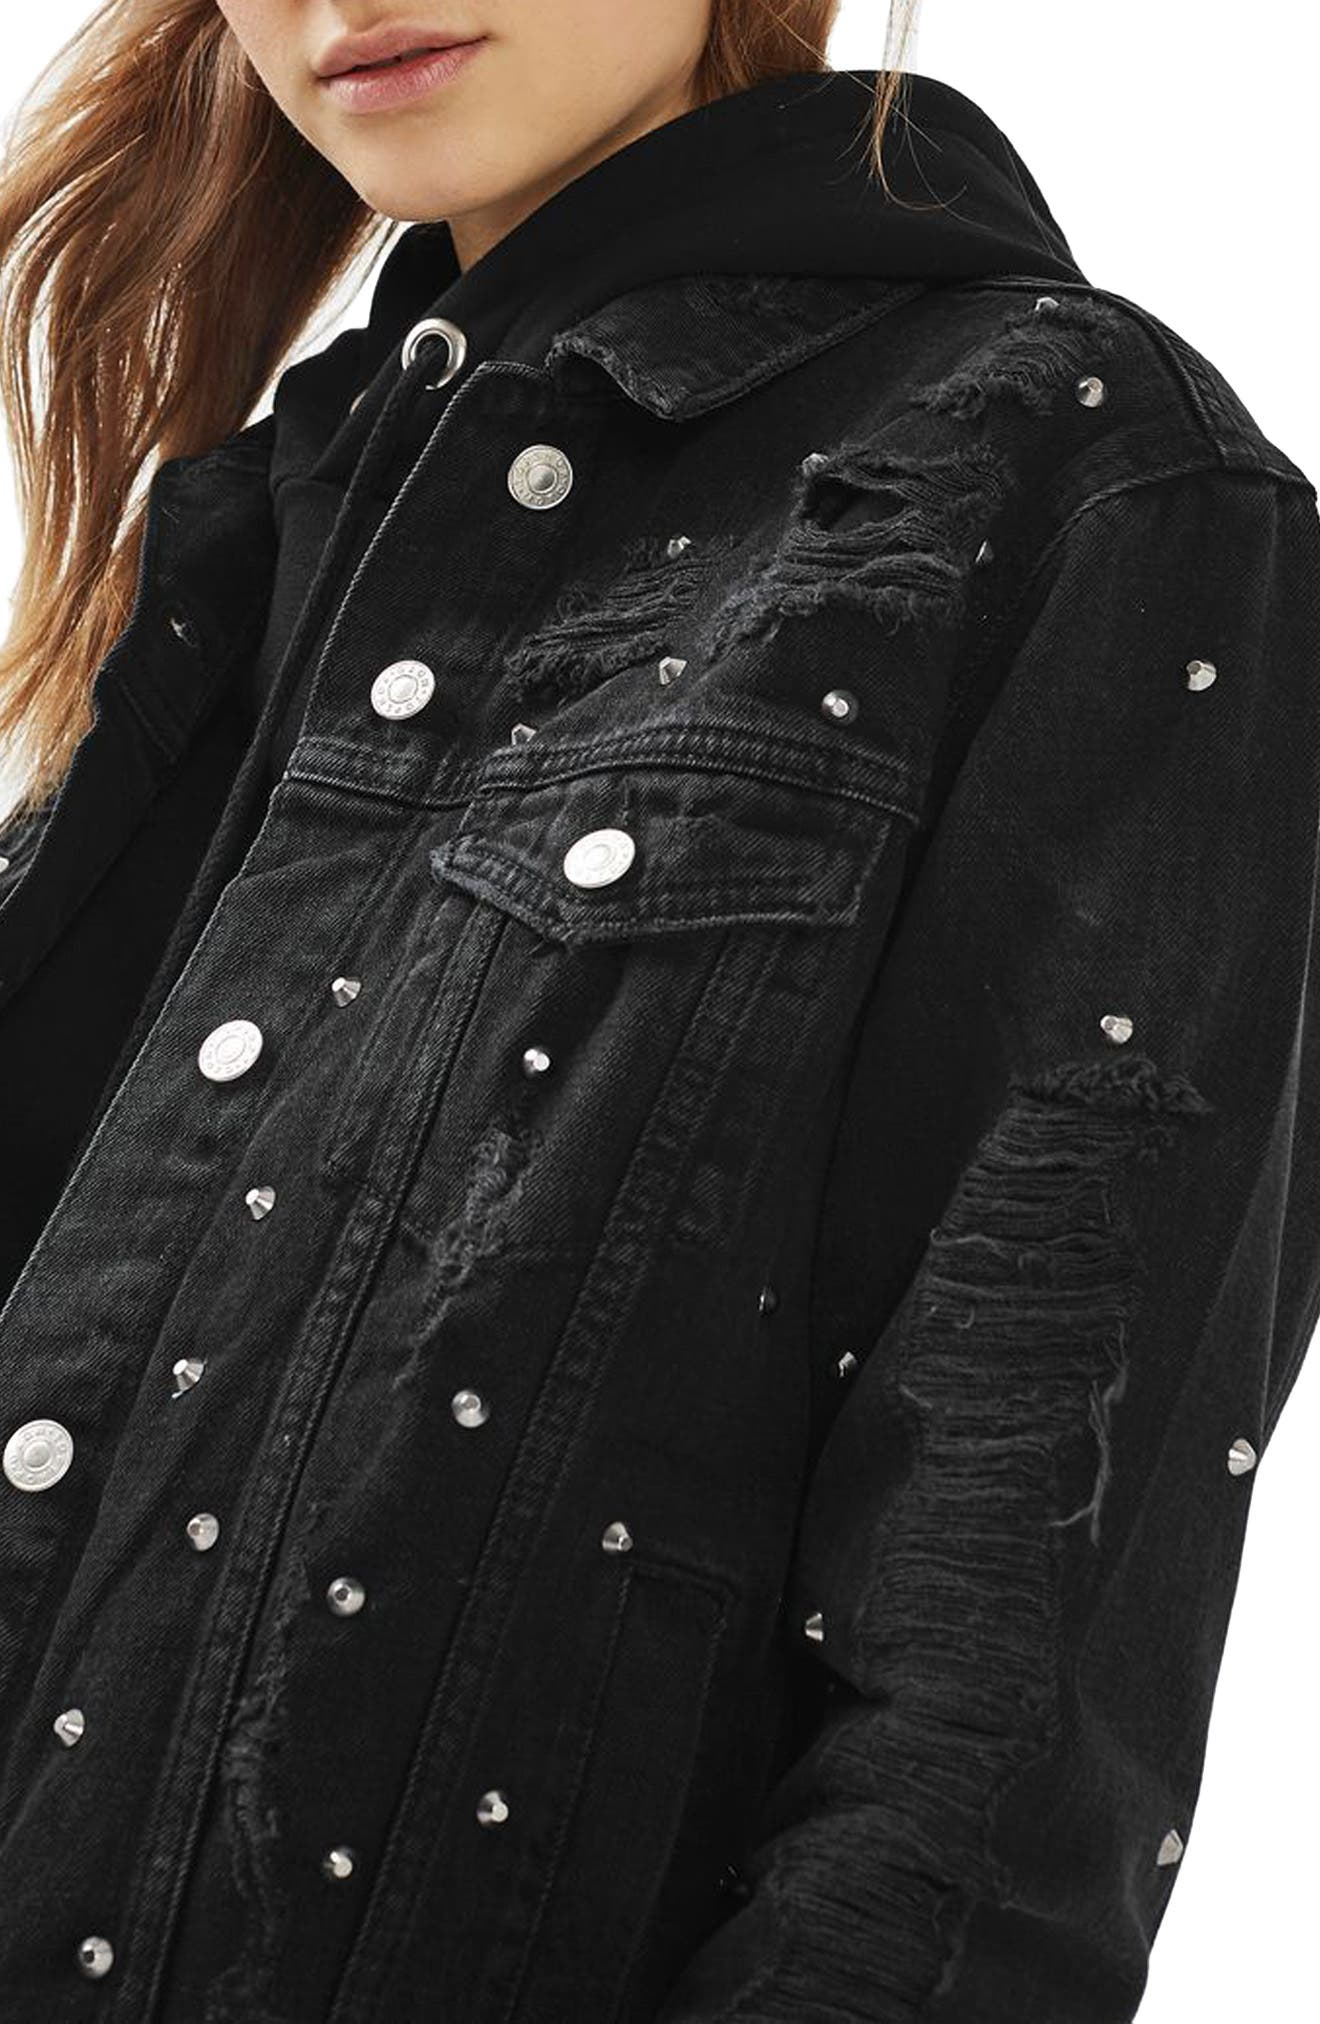 Main Image - Topshop Studded Distressed Denim Jacket (Regular & Petite)